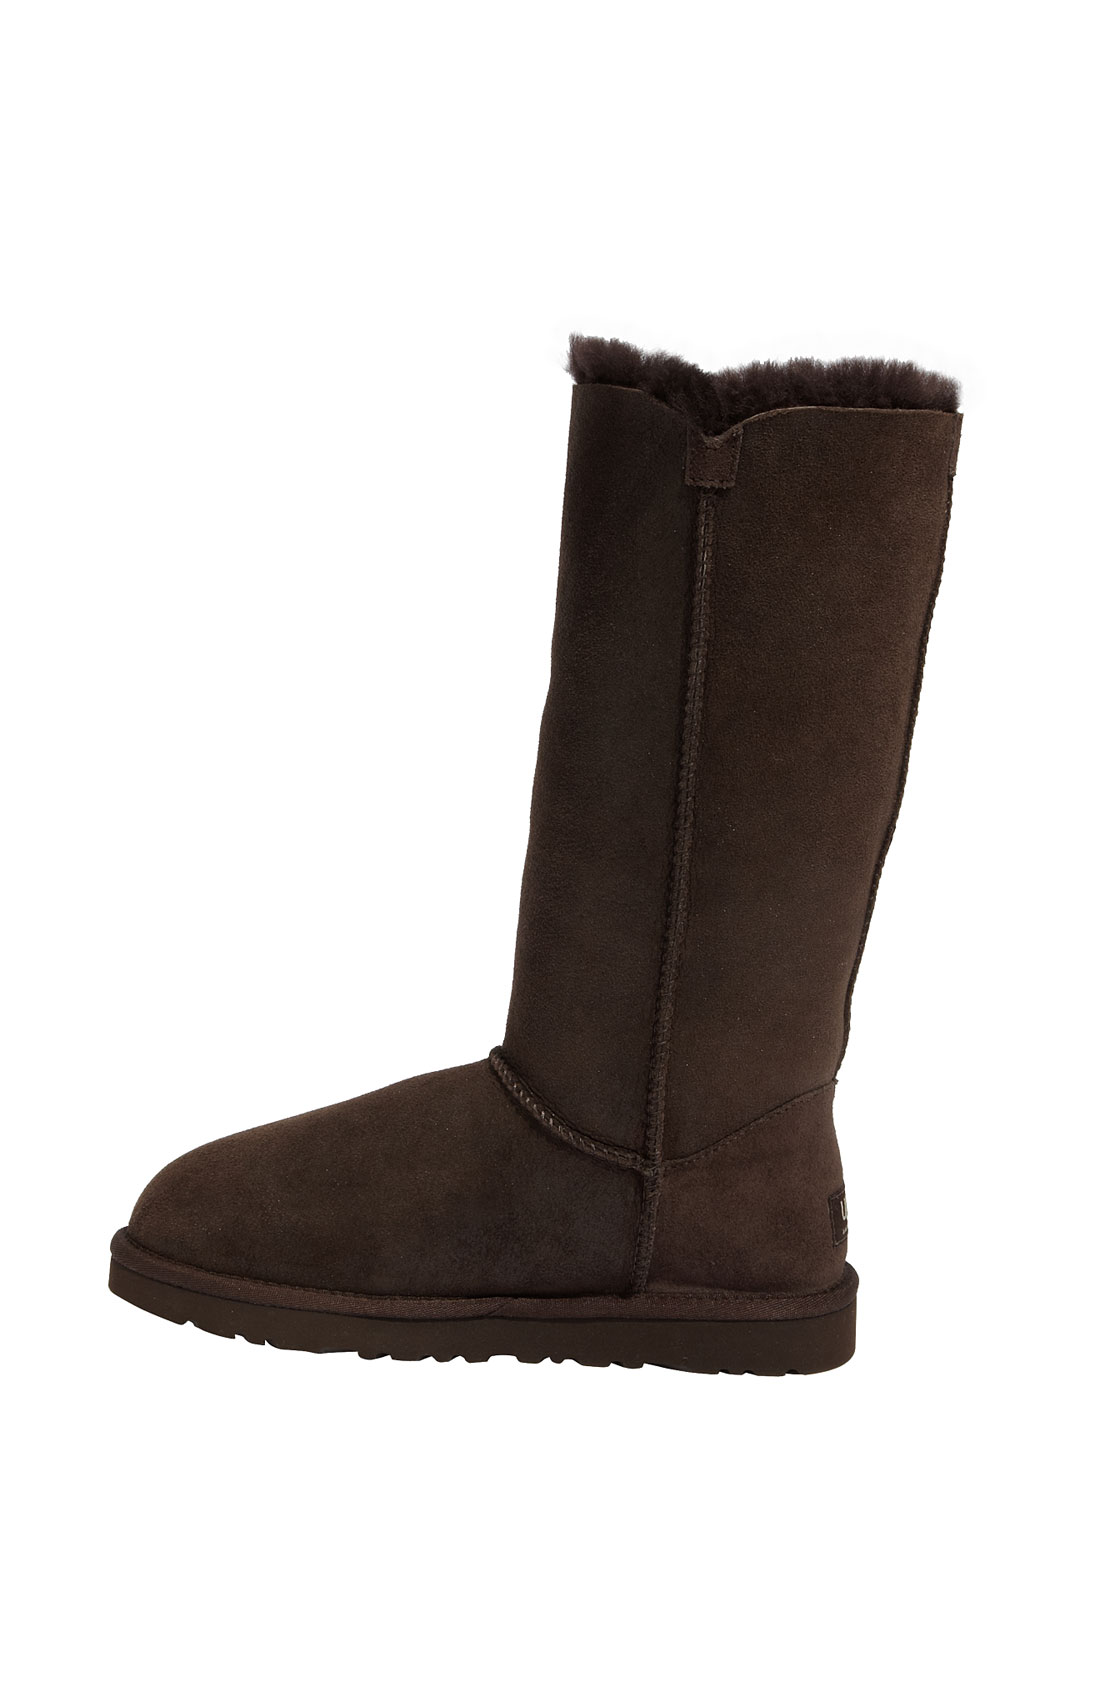 ugg bailey button bomber boots chocolate